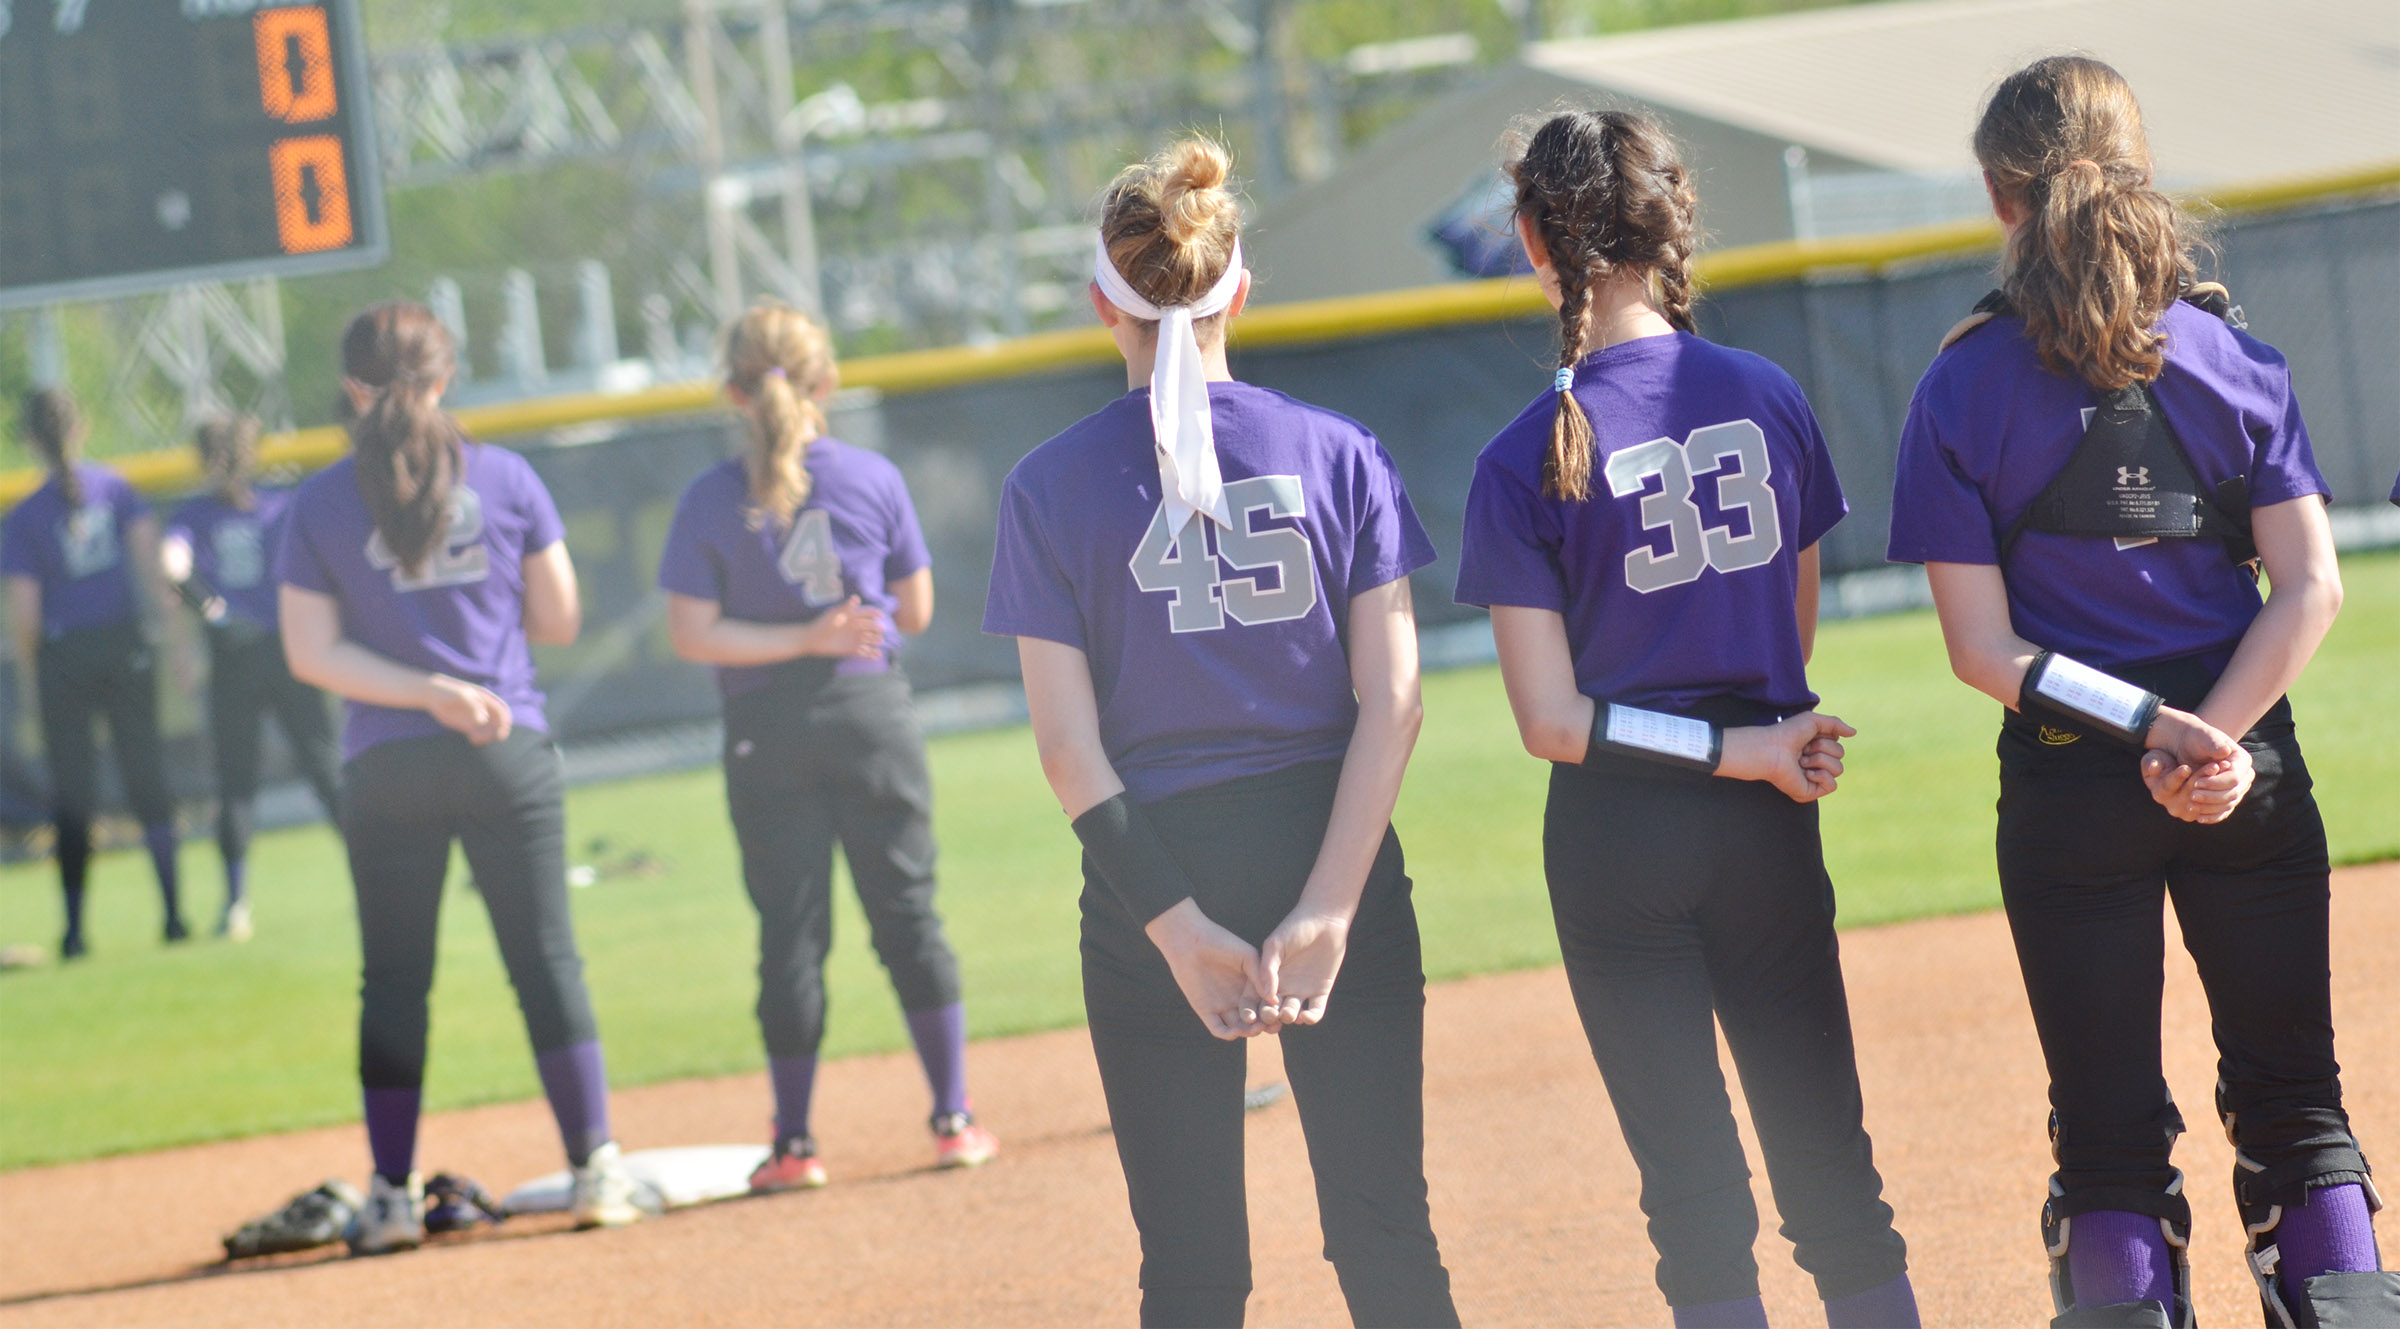 CMS softball players stand for the National Anthem.